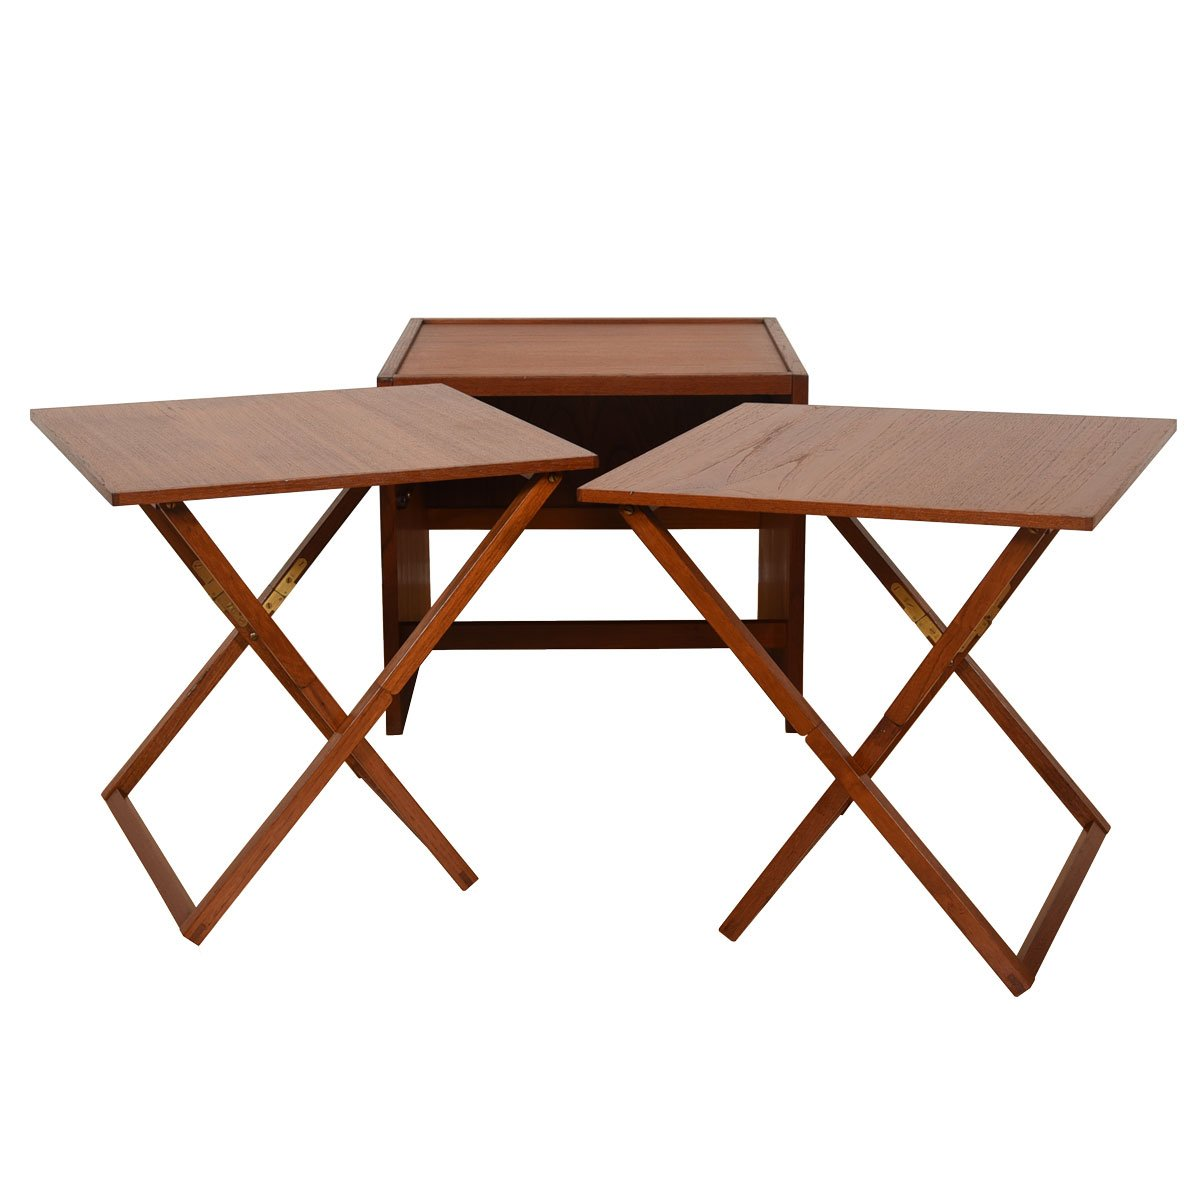 Danish Teak Accent Table w/ 2 Folding Tray Tables.